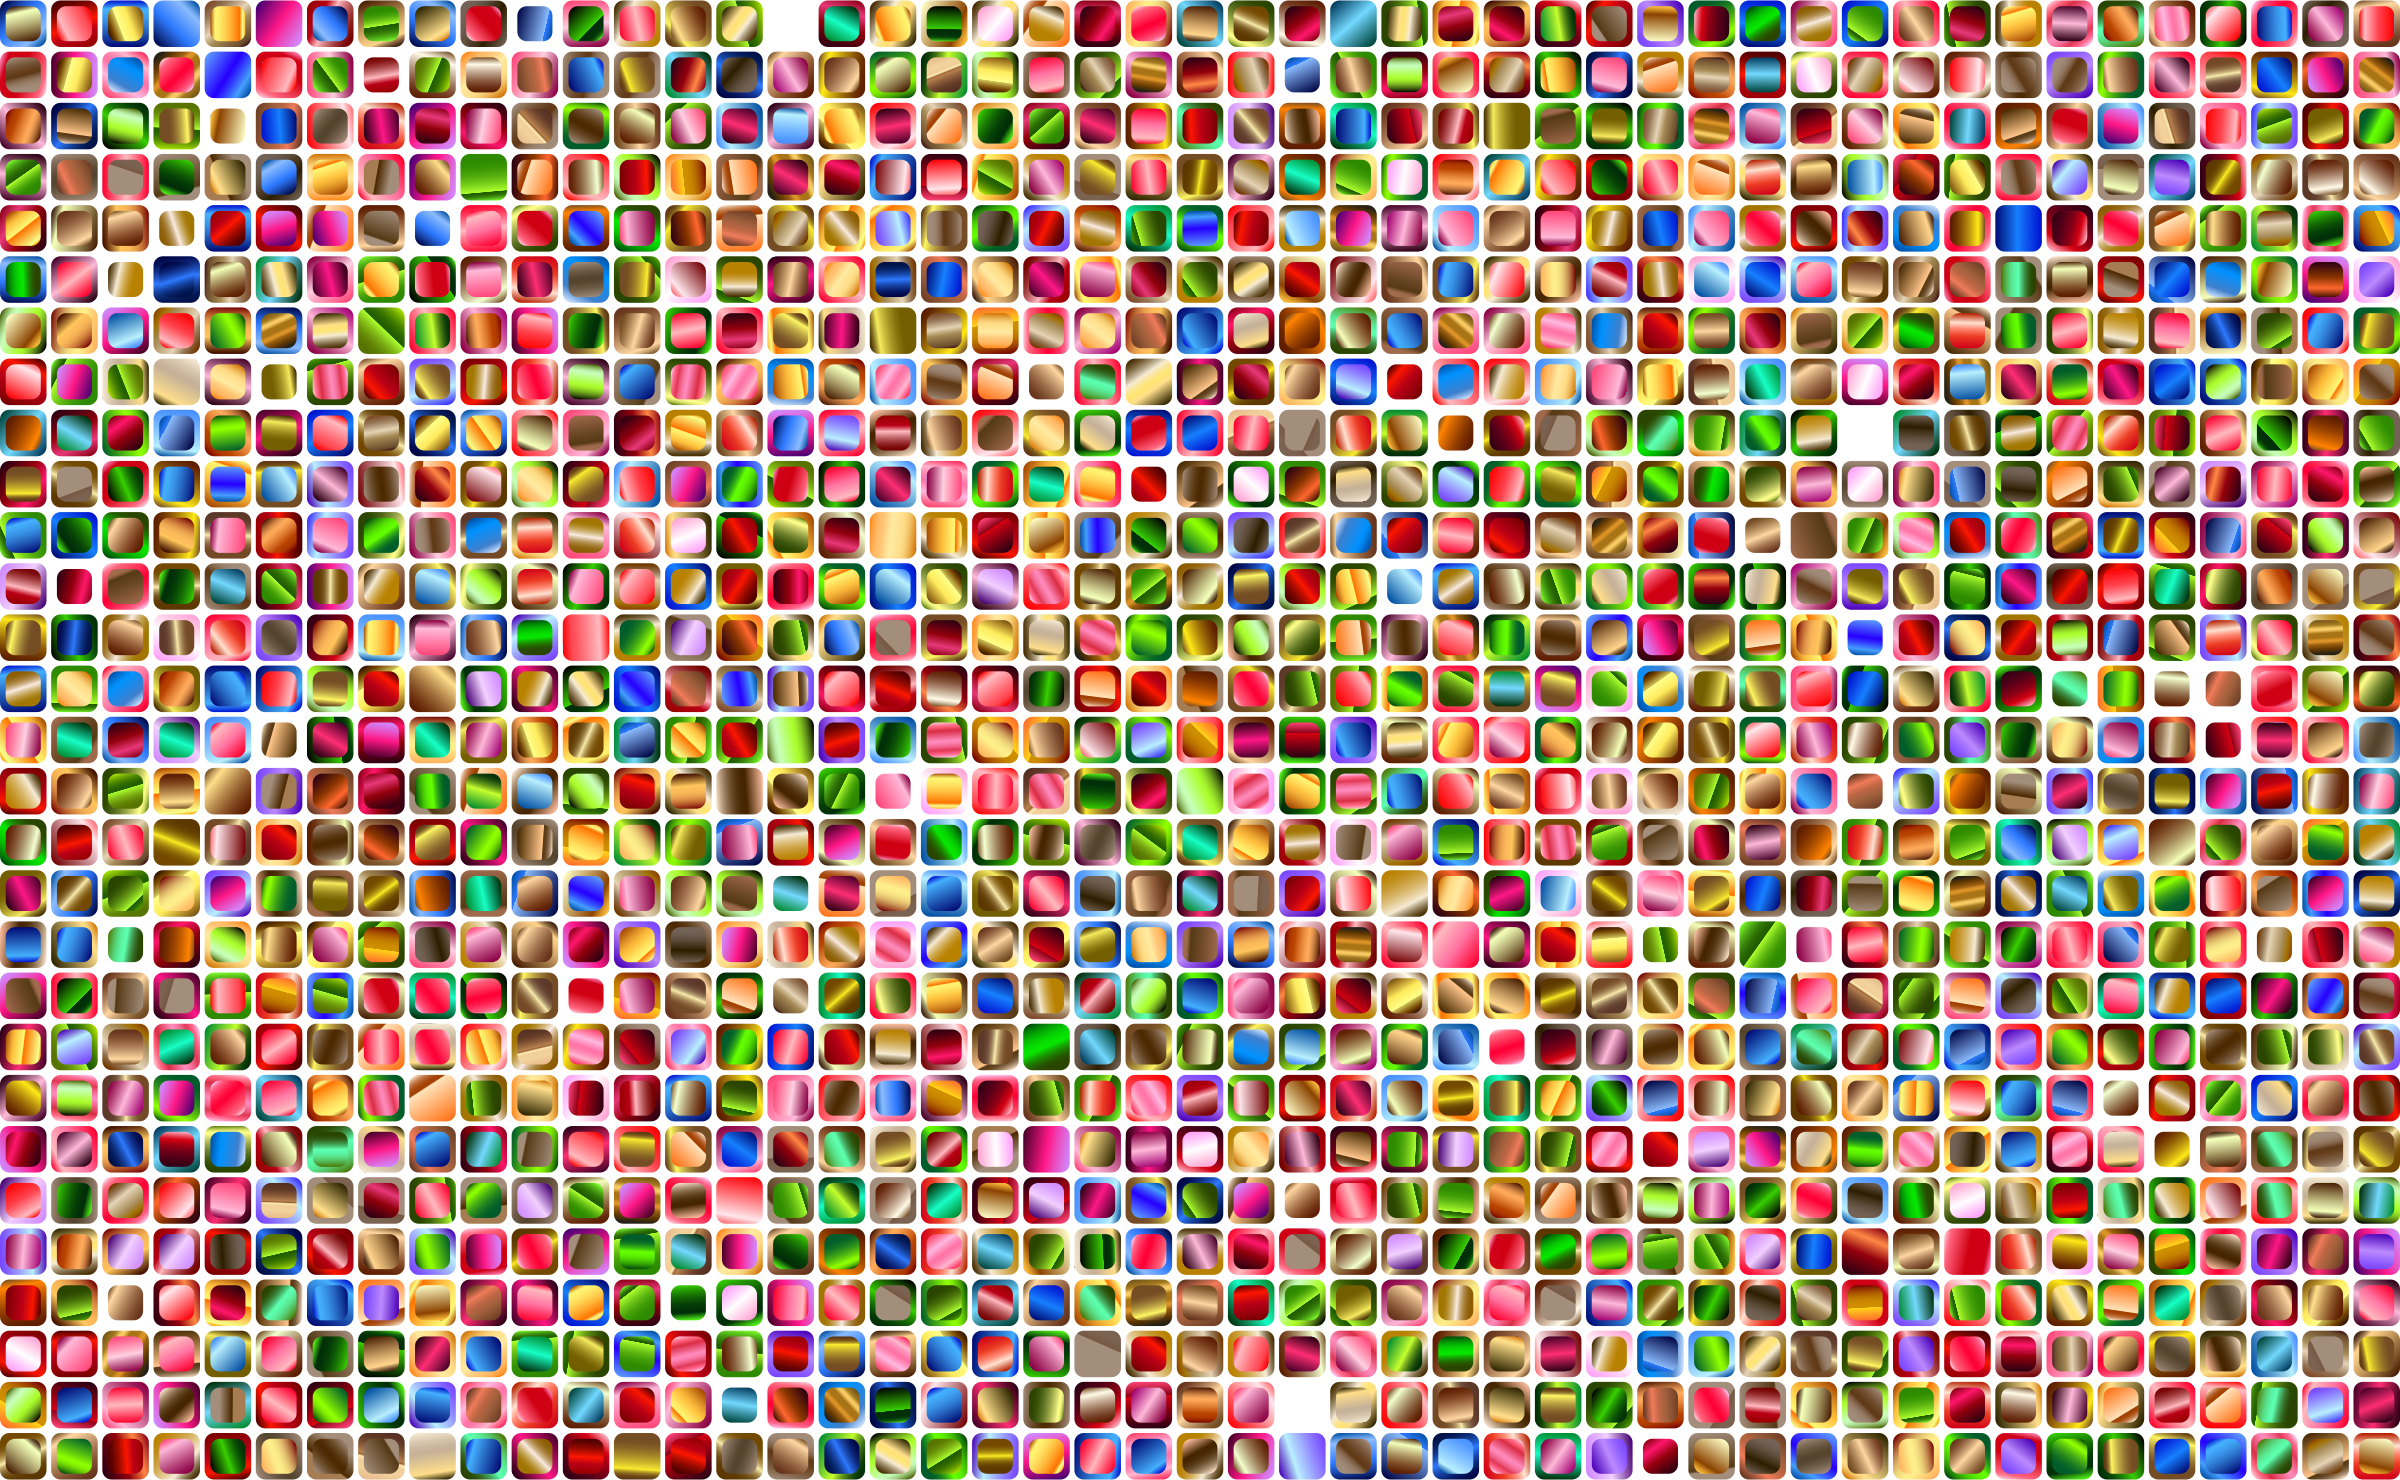 Colorful Squares Background 2 Variation 2 by GDJ